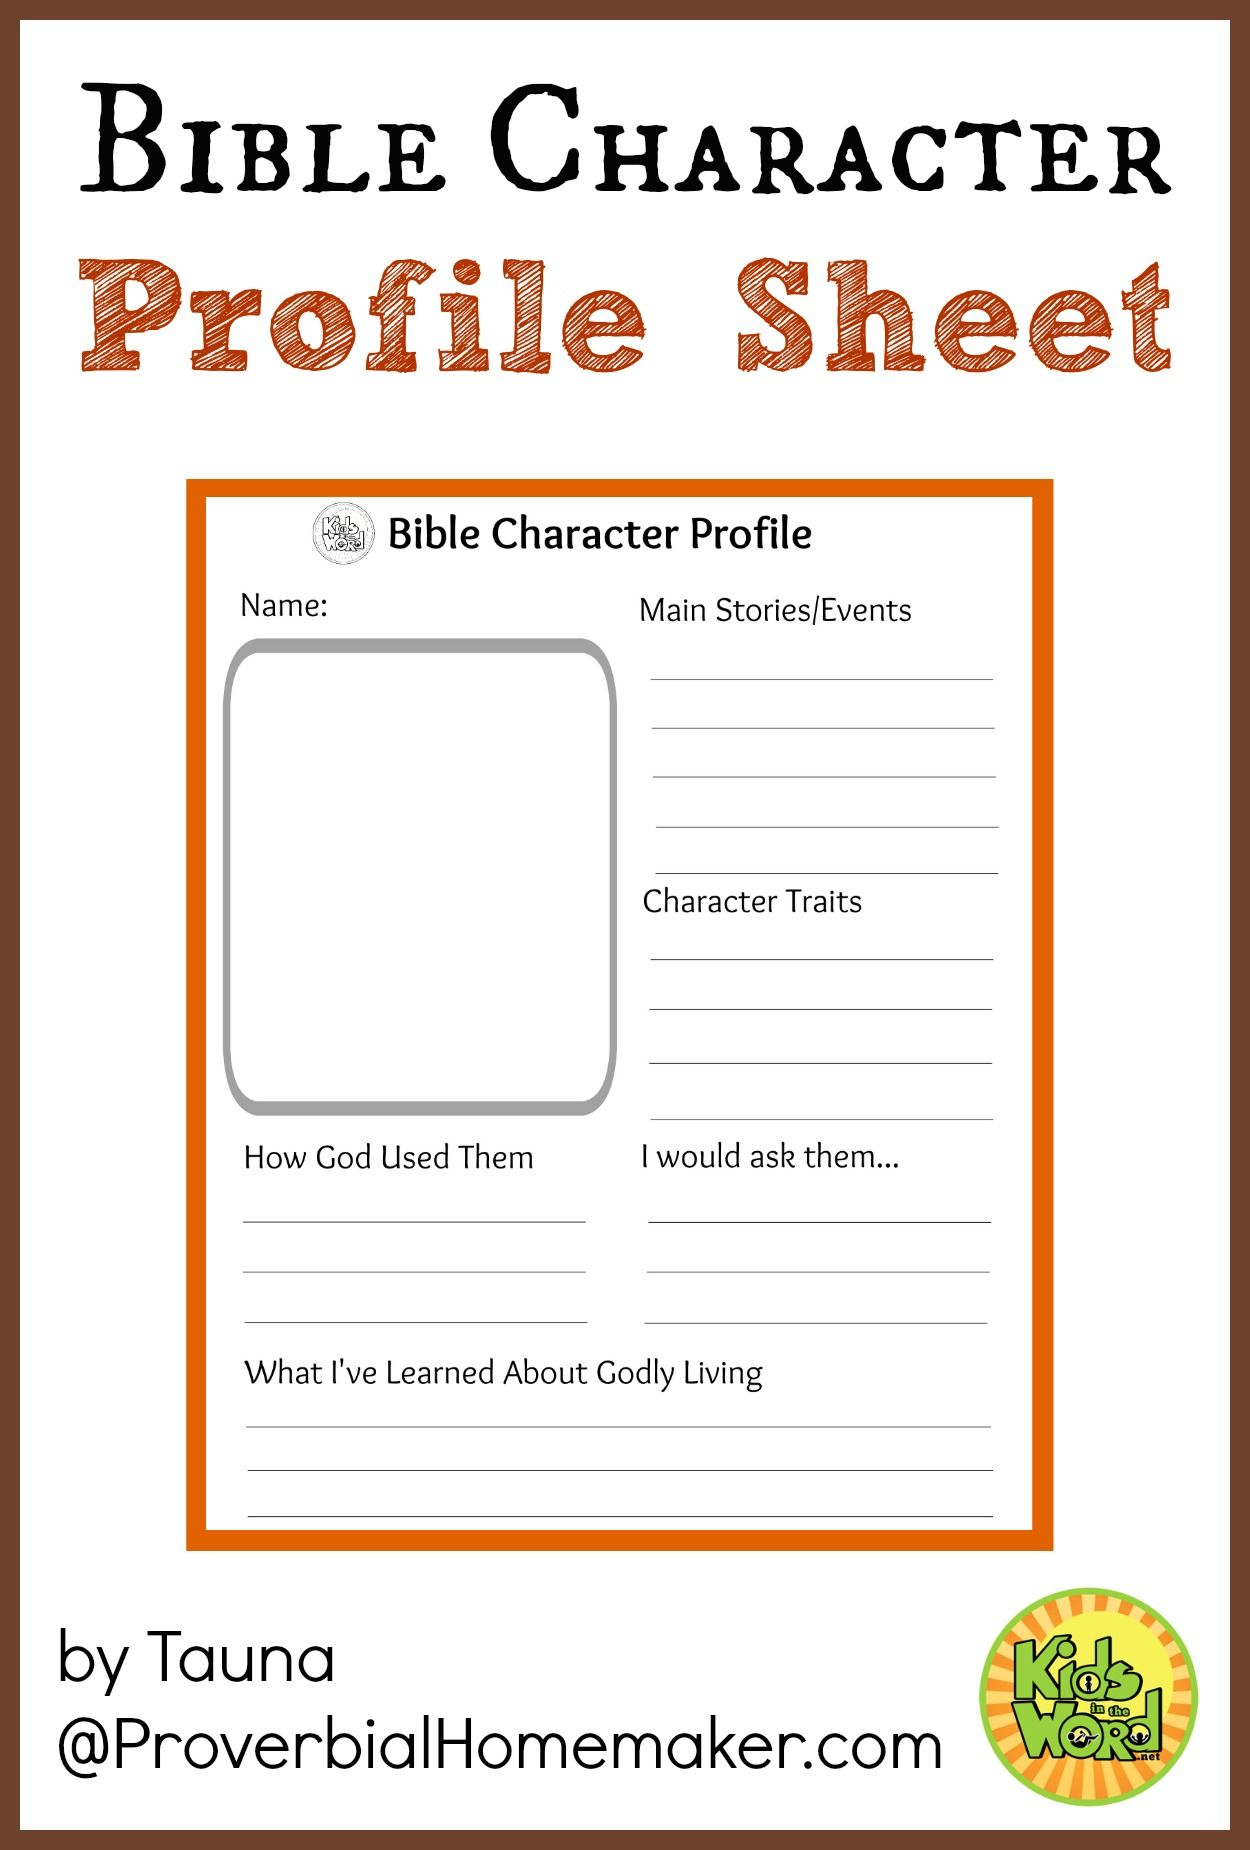 Printables Children Bible Study Worksheets 1000 images about bible study for kids on pinterest apps and christ